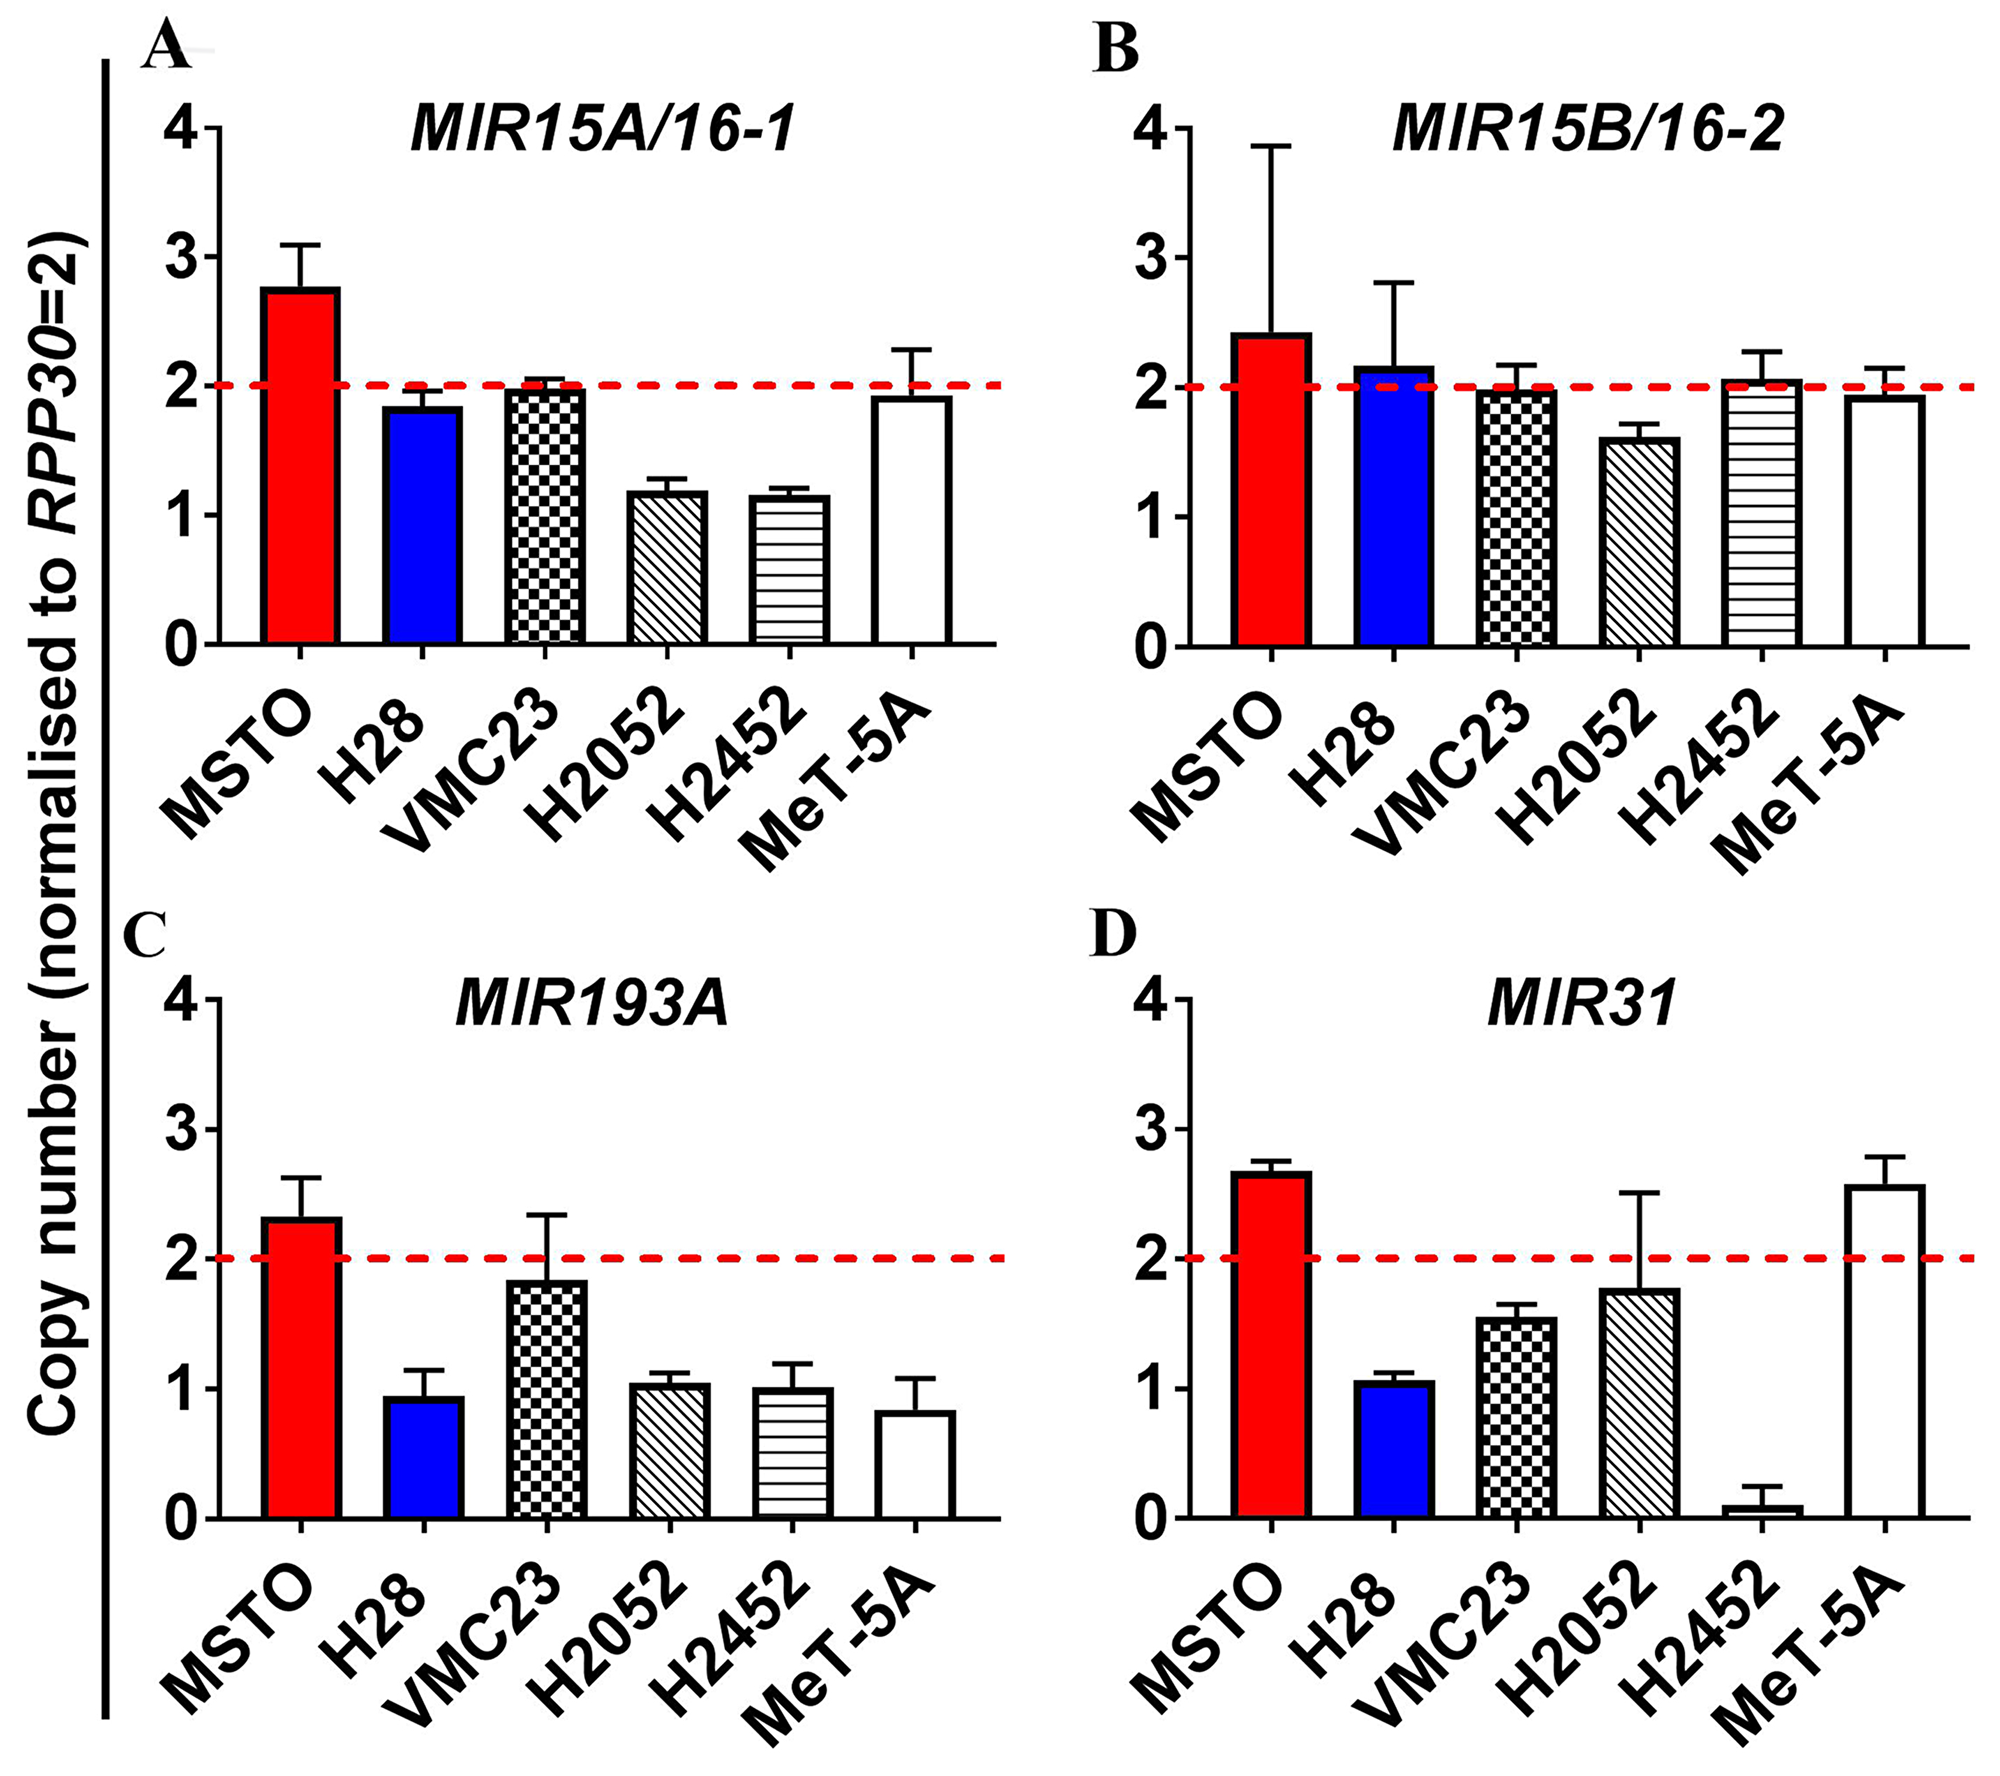 Analysis of copy number variation (CNV) of miRNA genes in MPM reveals allelic loss of the MIR193A and to a lesser extent MIR15A/16-1, but not MIR15B/MIR16-2.